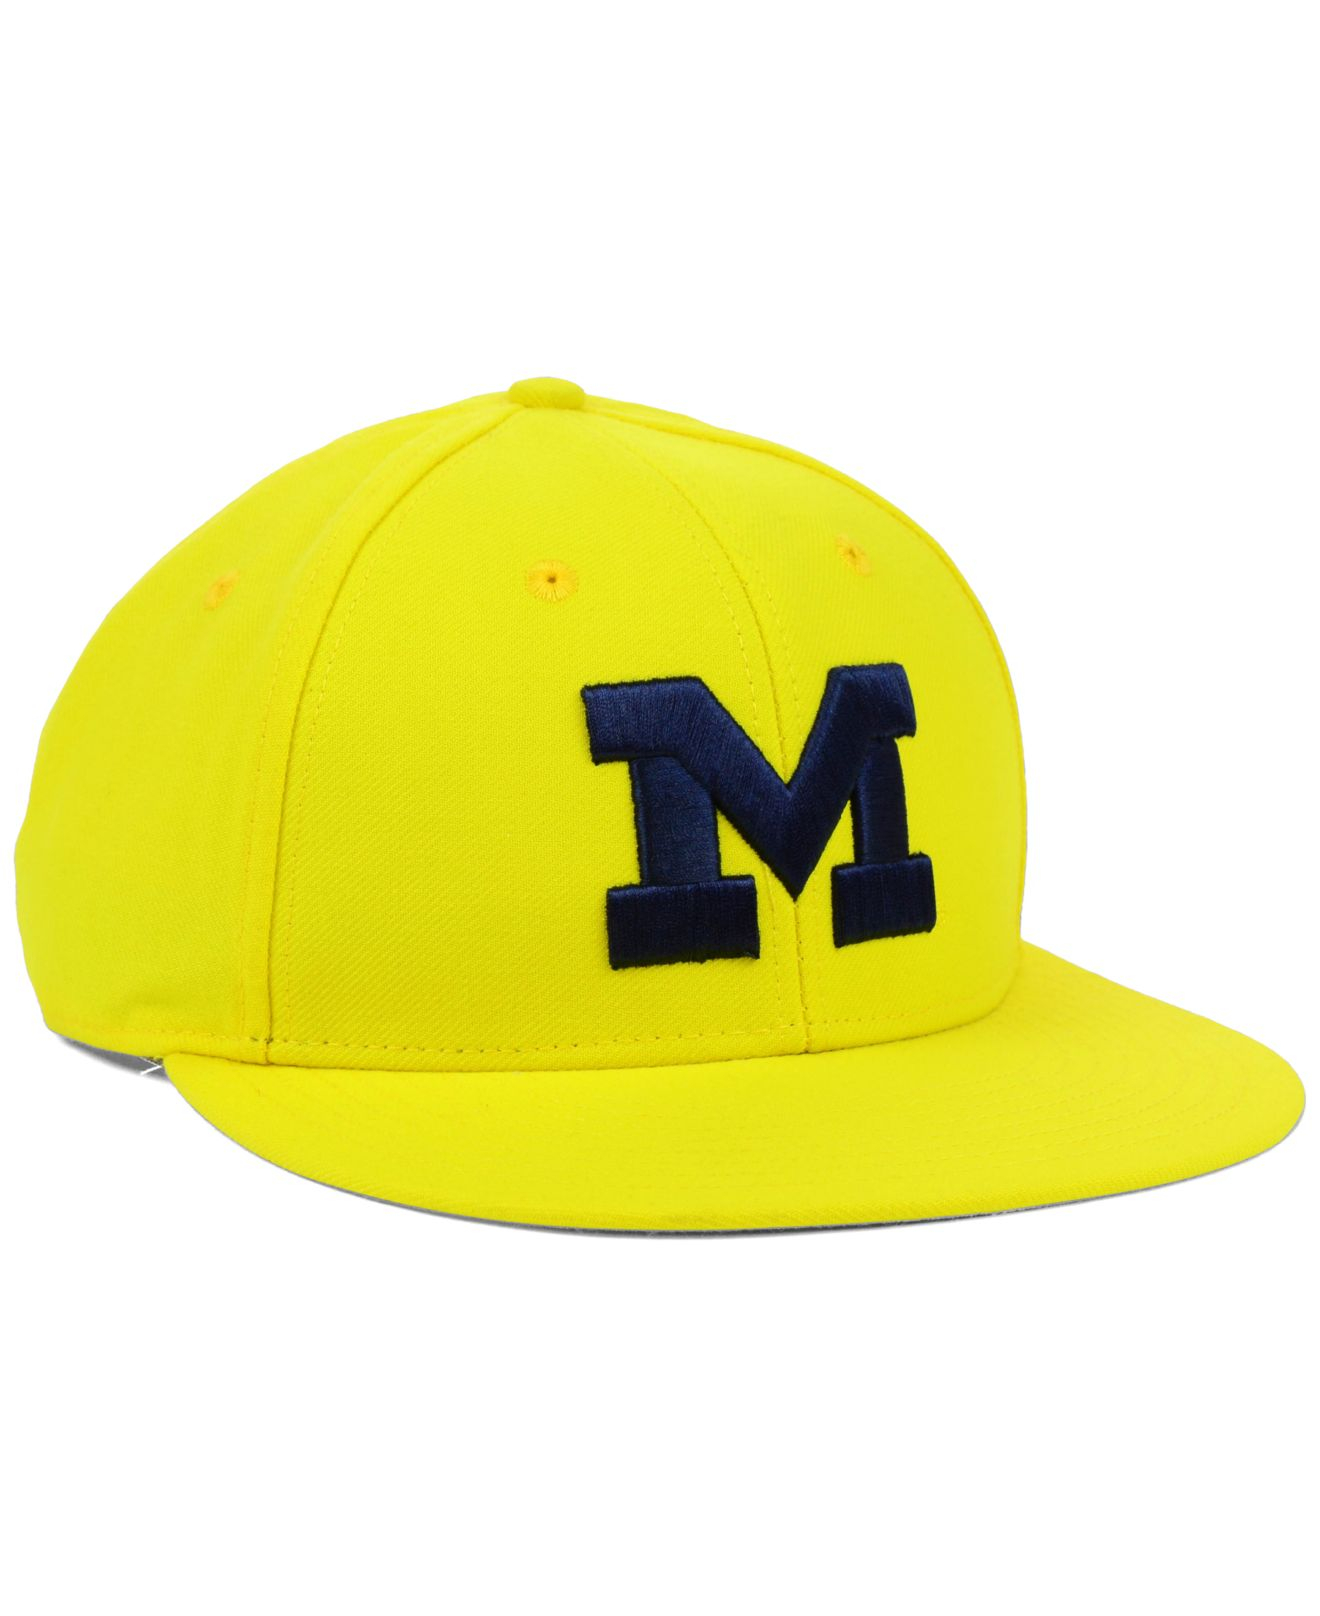 71ce3808c7f Lyst - adidas Michigan Wolverines Ncaa On-field Baseball Cap in Metallic  for Men